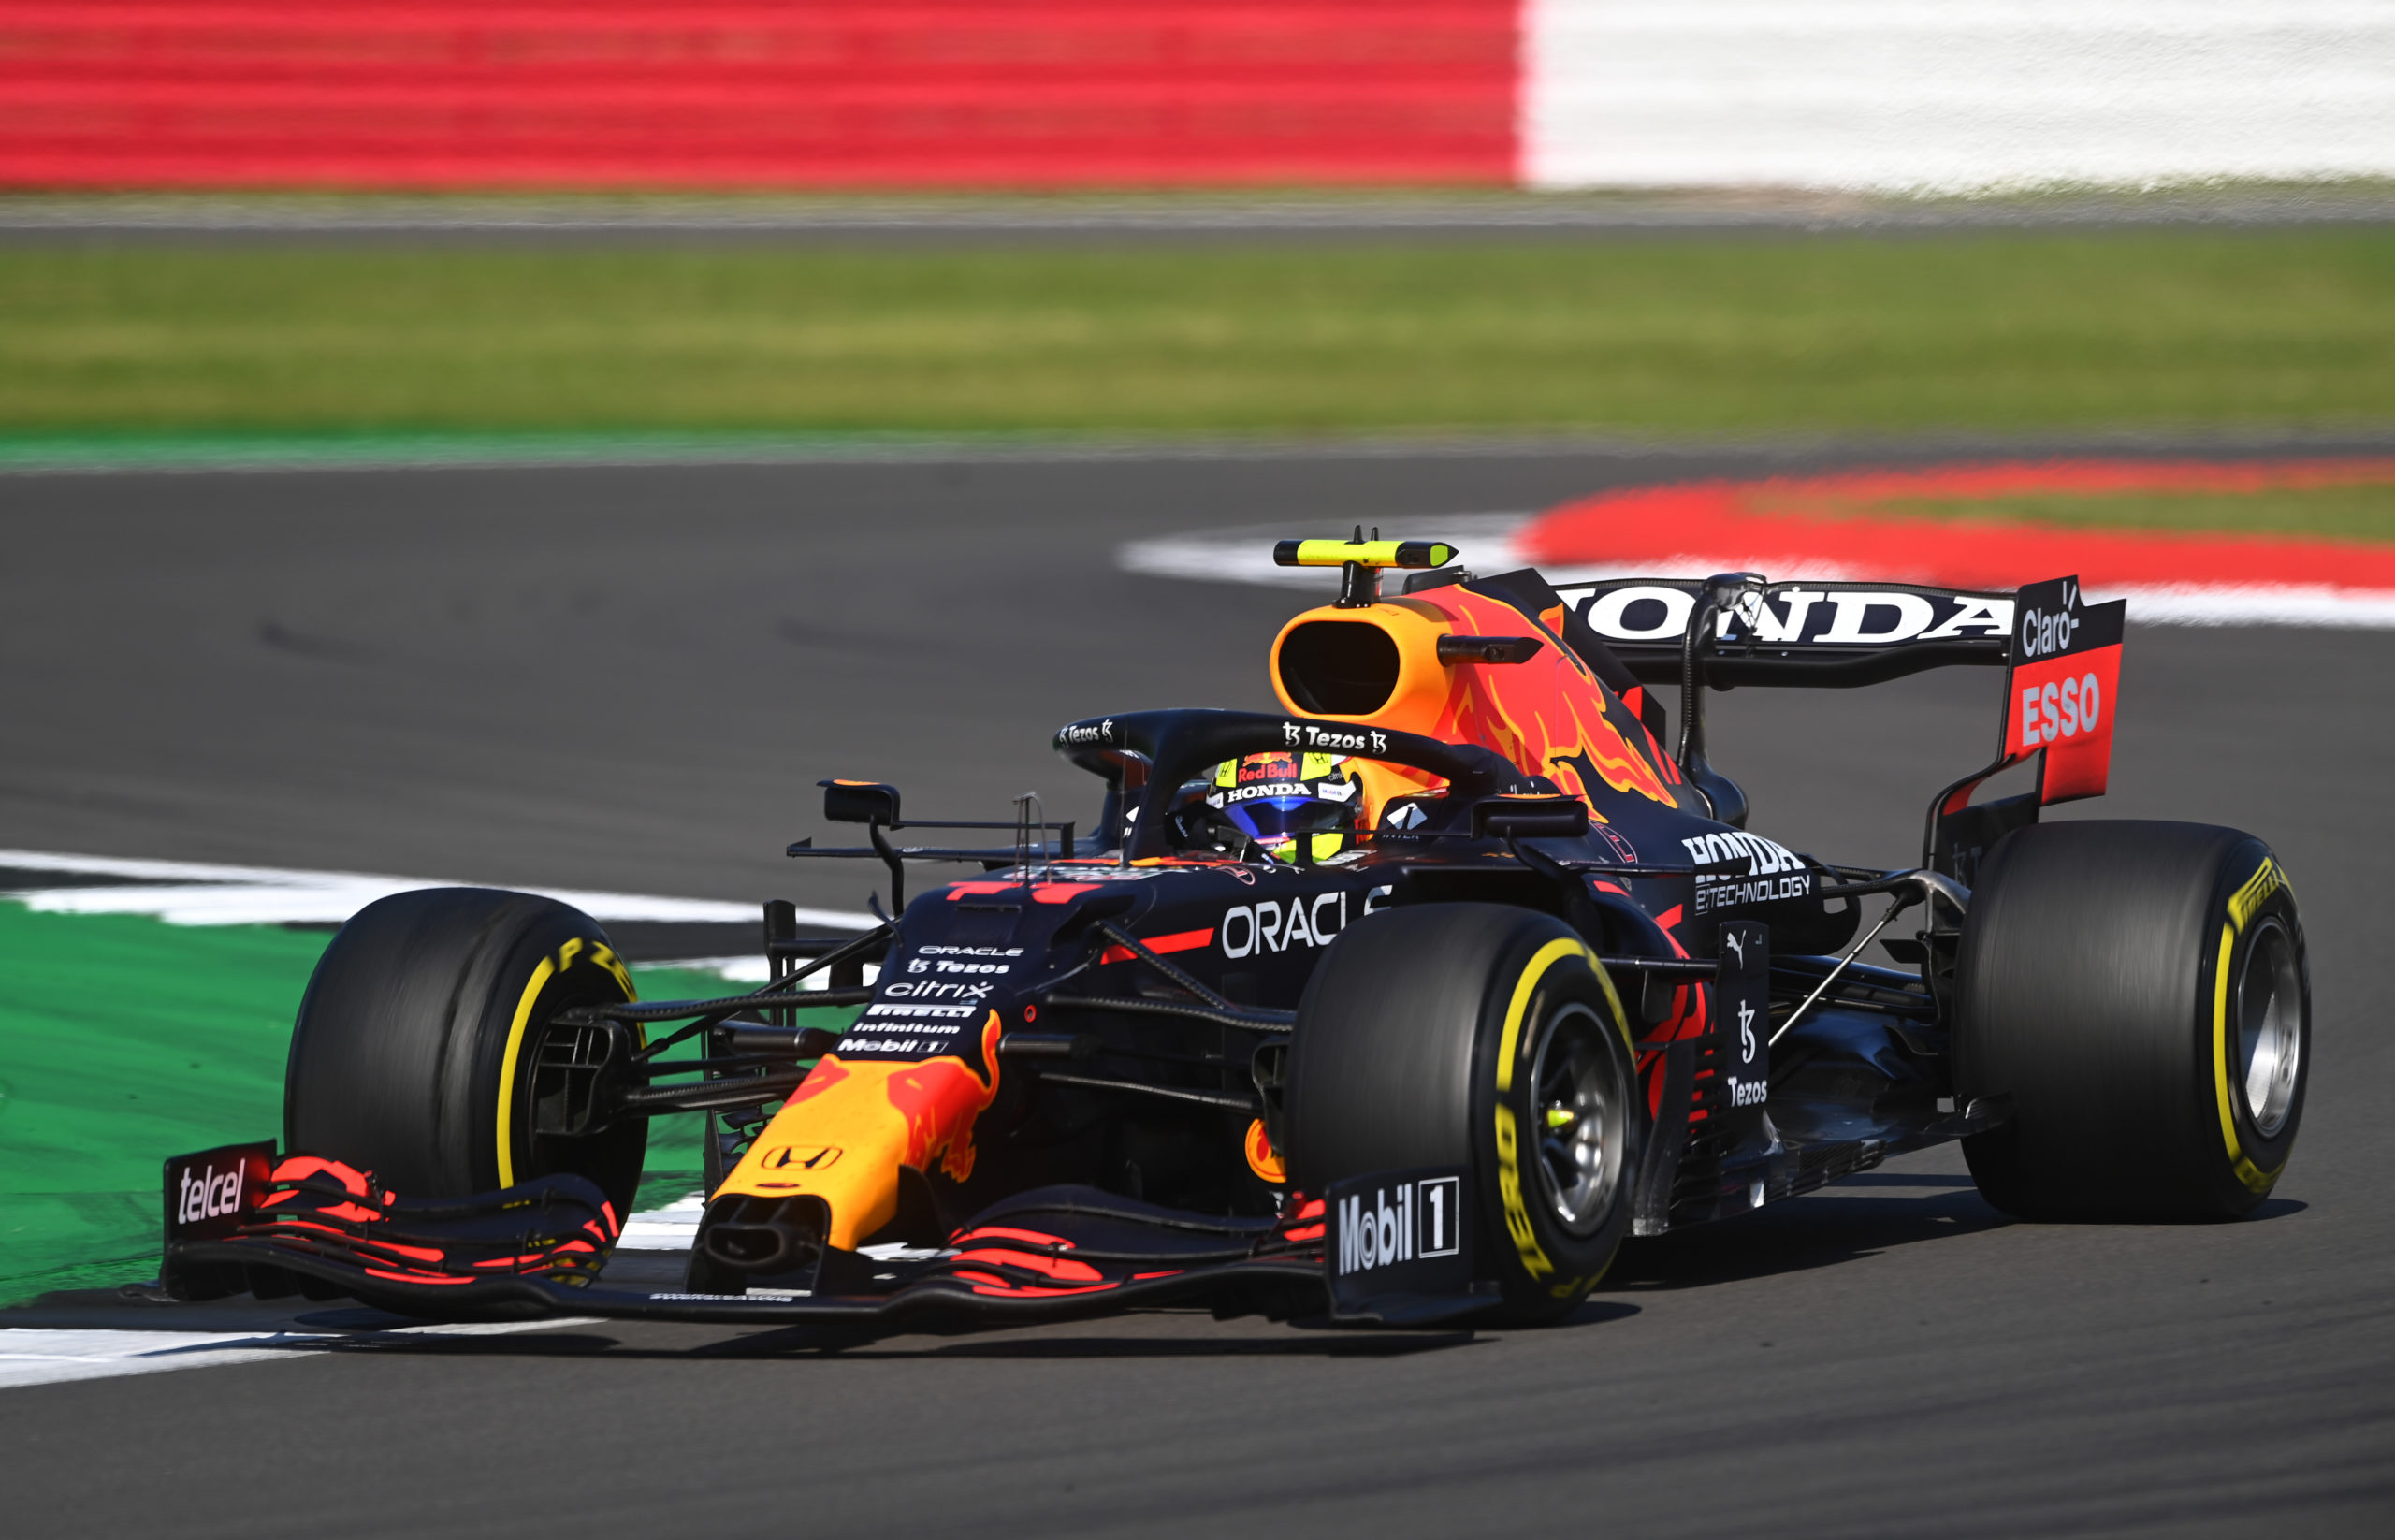 NORTHAMPTON, ENGLAND - JULY 18: Sergio Perez of Mexico driving the (11) Red Bull Racing RB16B Honda during the F1 Grand Prix of Great Britain at Silverstone on July 18, 2021 in Northampton, England. (Photo by Michael Regan/Getty Images) // Getty Images / Red Bull Content Pool  // SI202107180158 // Usage for editorial use only //